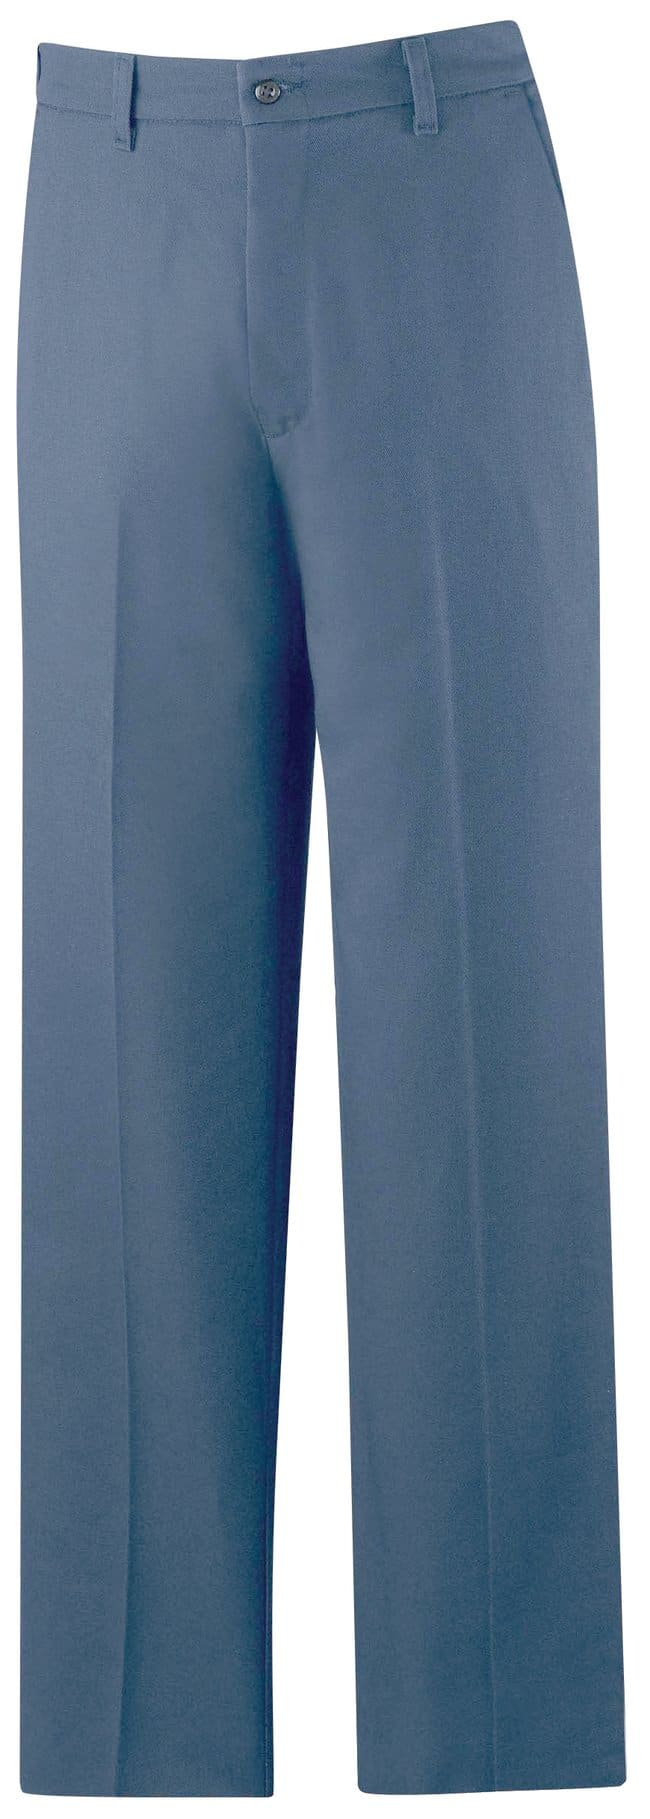 VF WorkwearBulwark Excel-FR™ ComforTouch™ HRC2 Work Pants